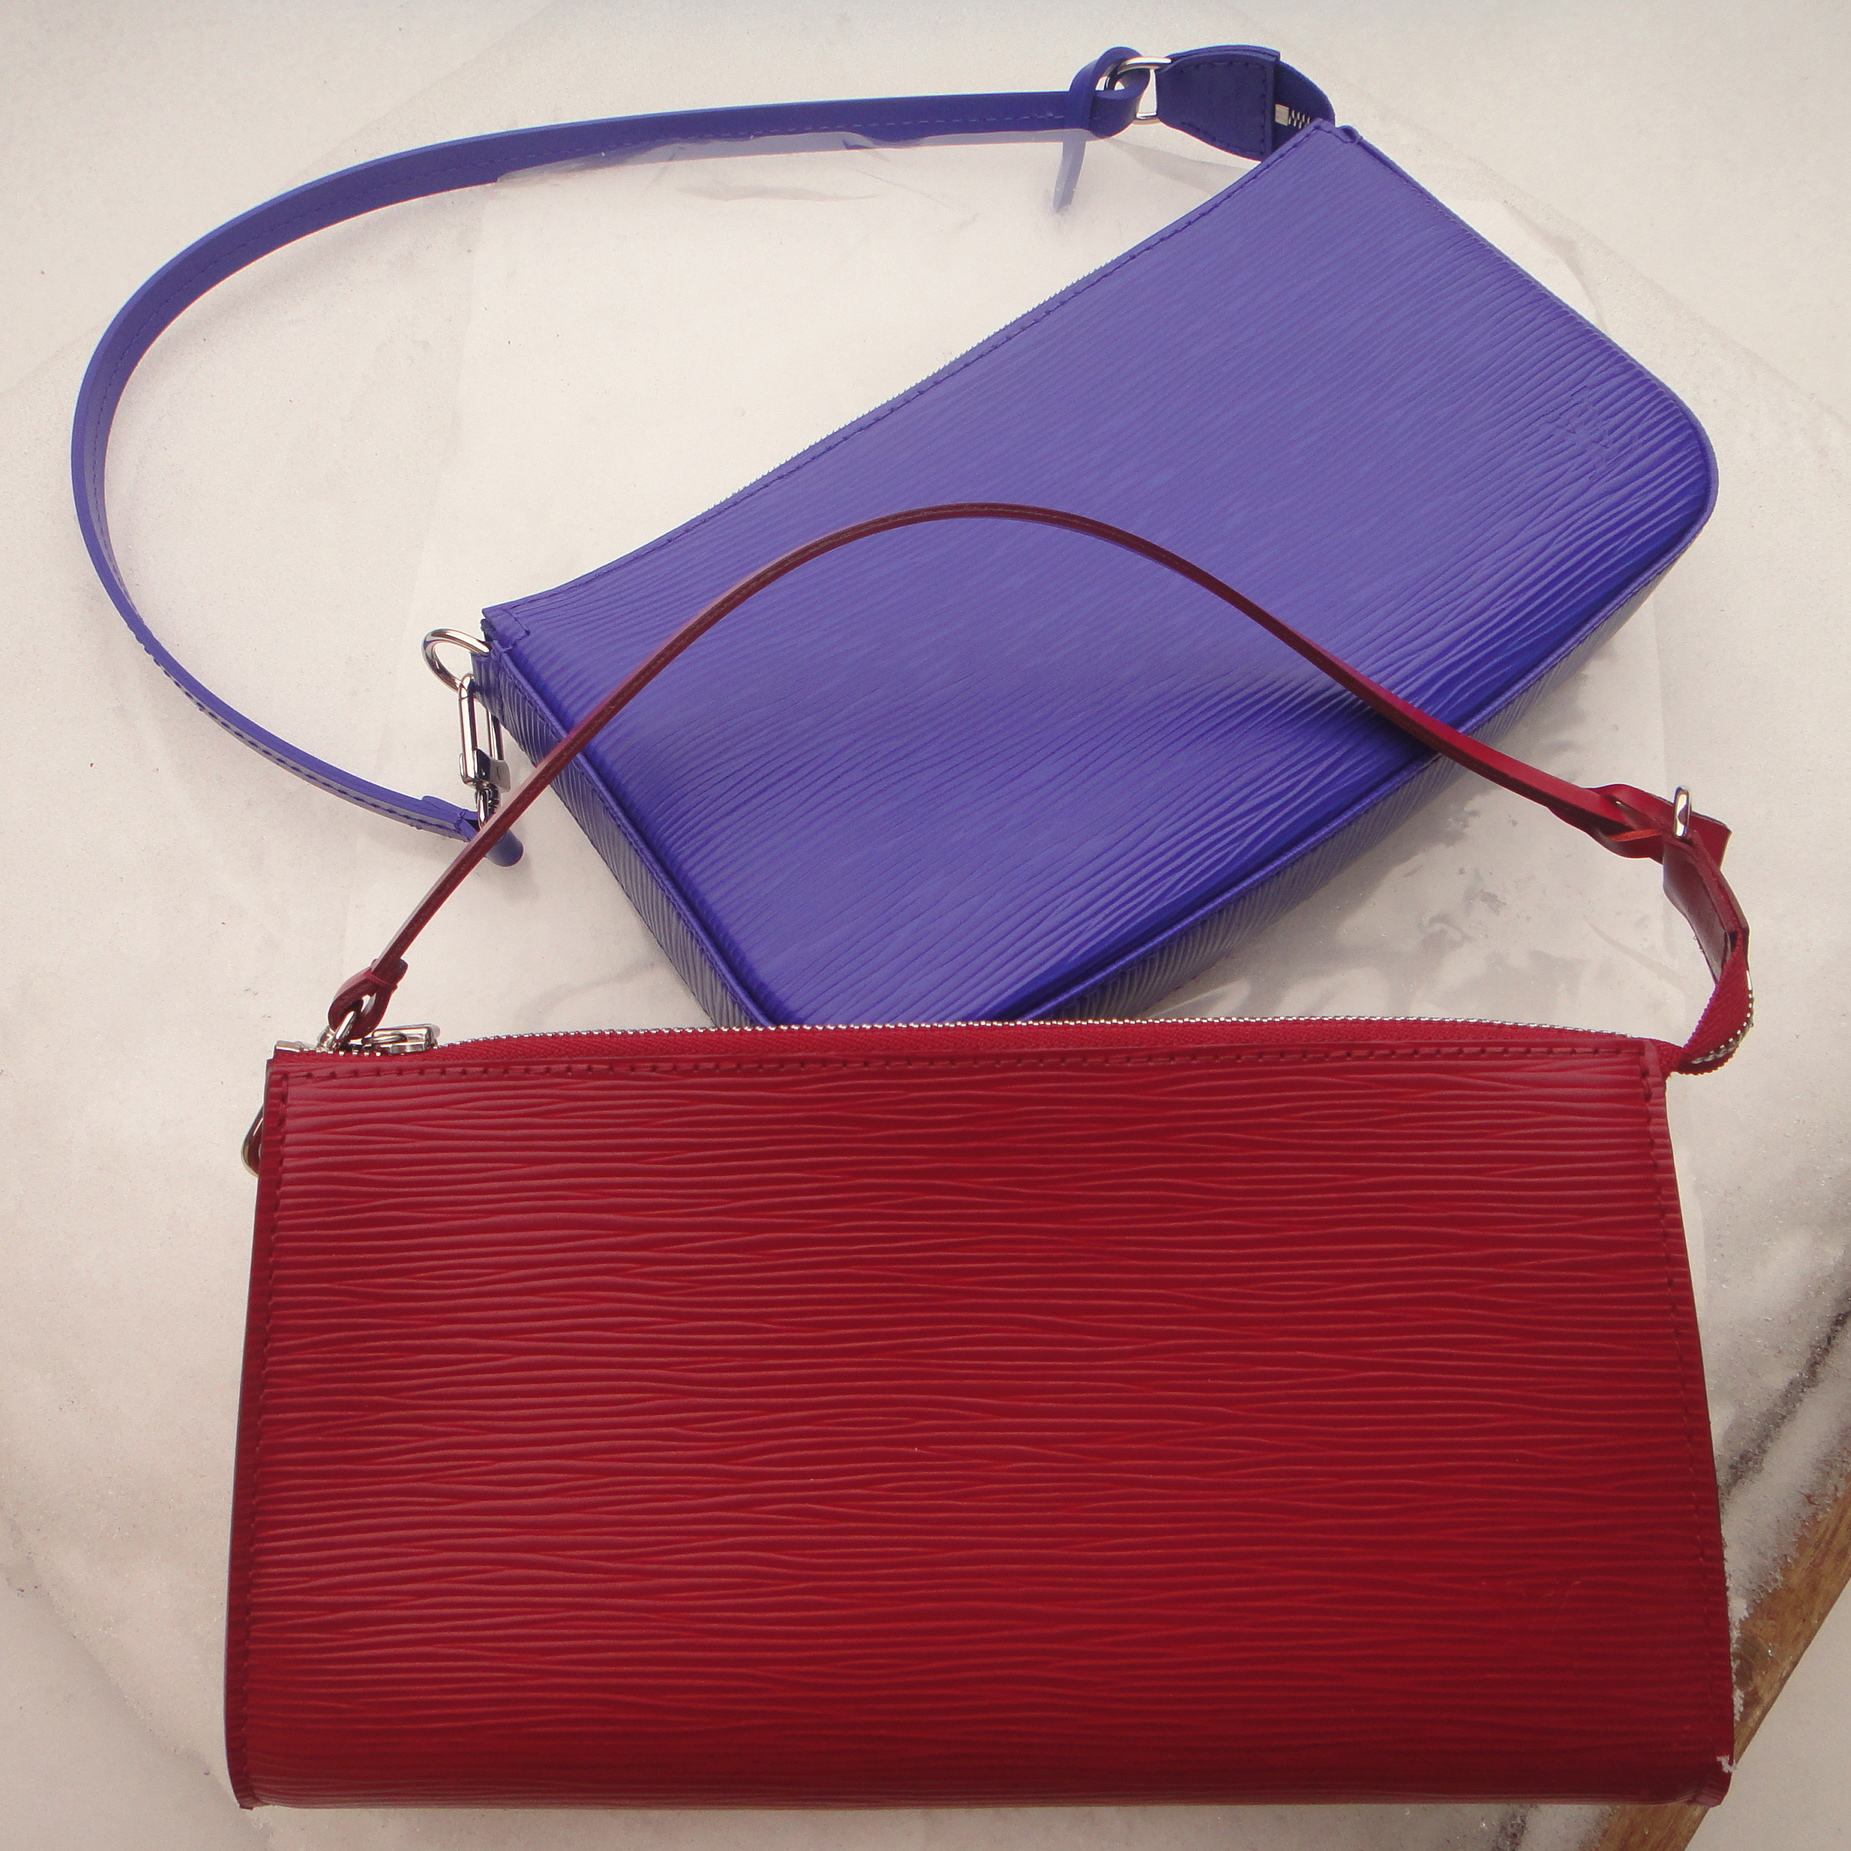 LV Pochette Accessoires top   NEW MODEL in FIGUE, bottom OLD MODEL in FUCHSIA